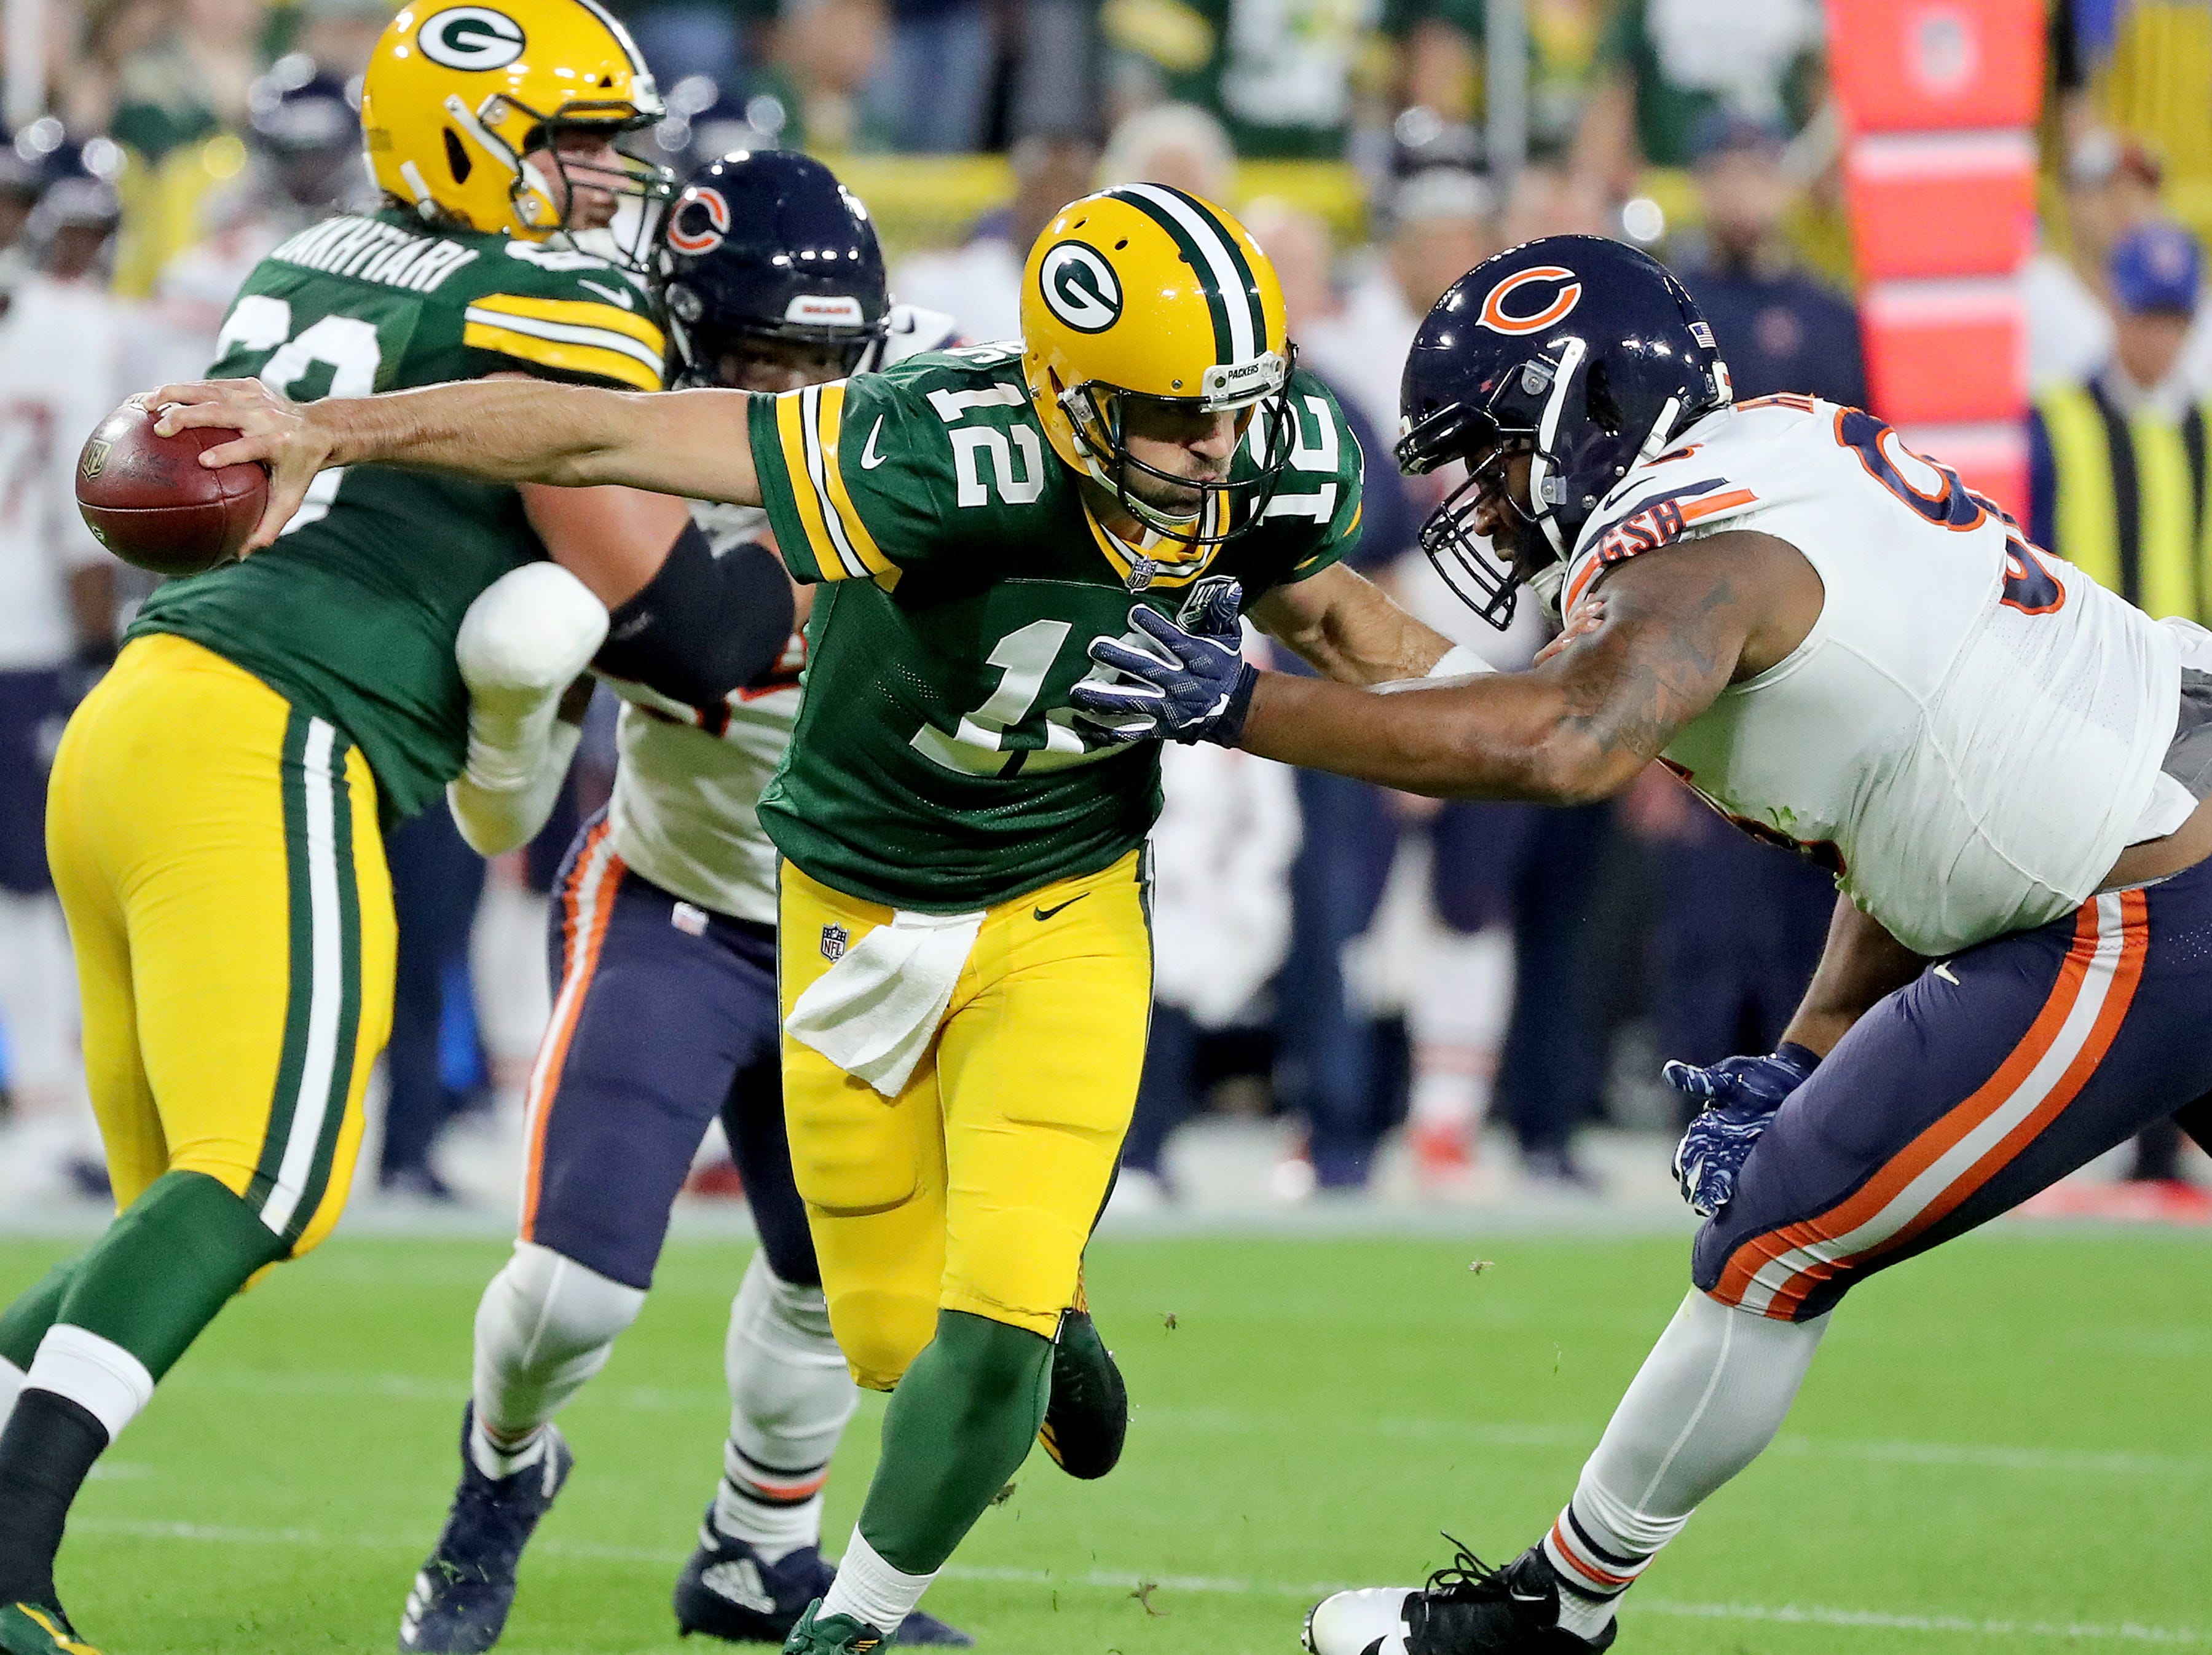 Green Bay Packers quarterback Aaron Rodgers (12) barely escapes the rush of defensive end Akiem Hicks (96) against the Chicago Bears Sunday, September 9, 2018 at Lambeau Field in Green Bay, Wis. Jim Matthews/USA TODAY NETWORK-Wisconsin